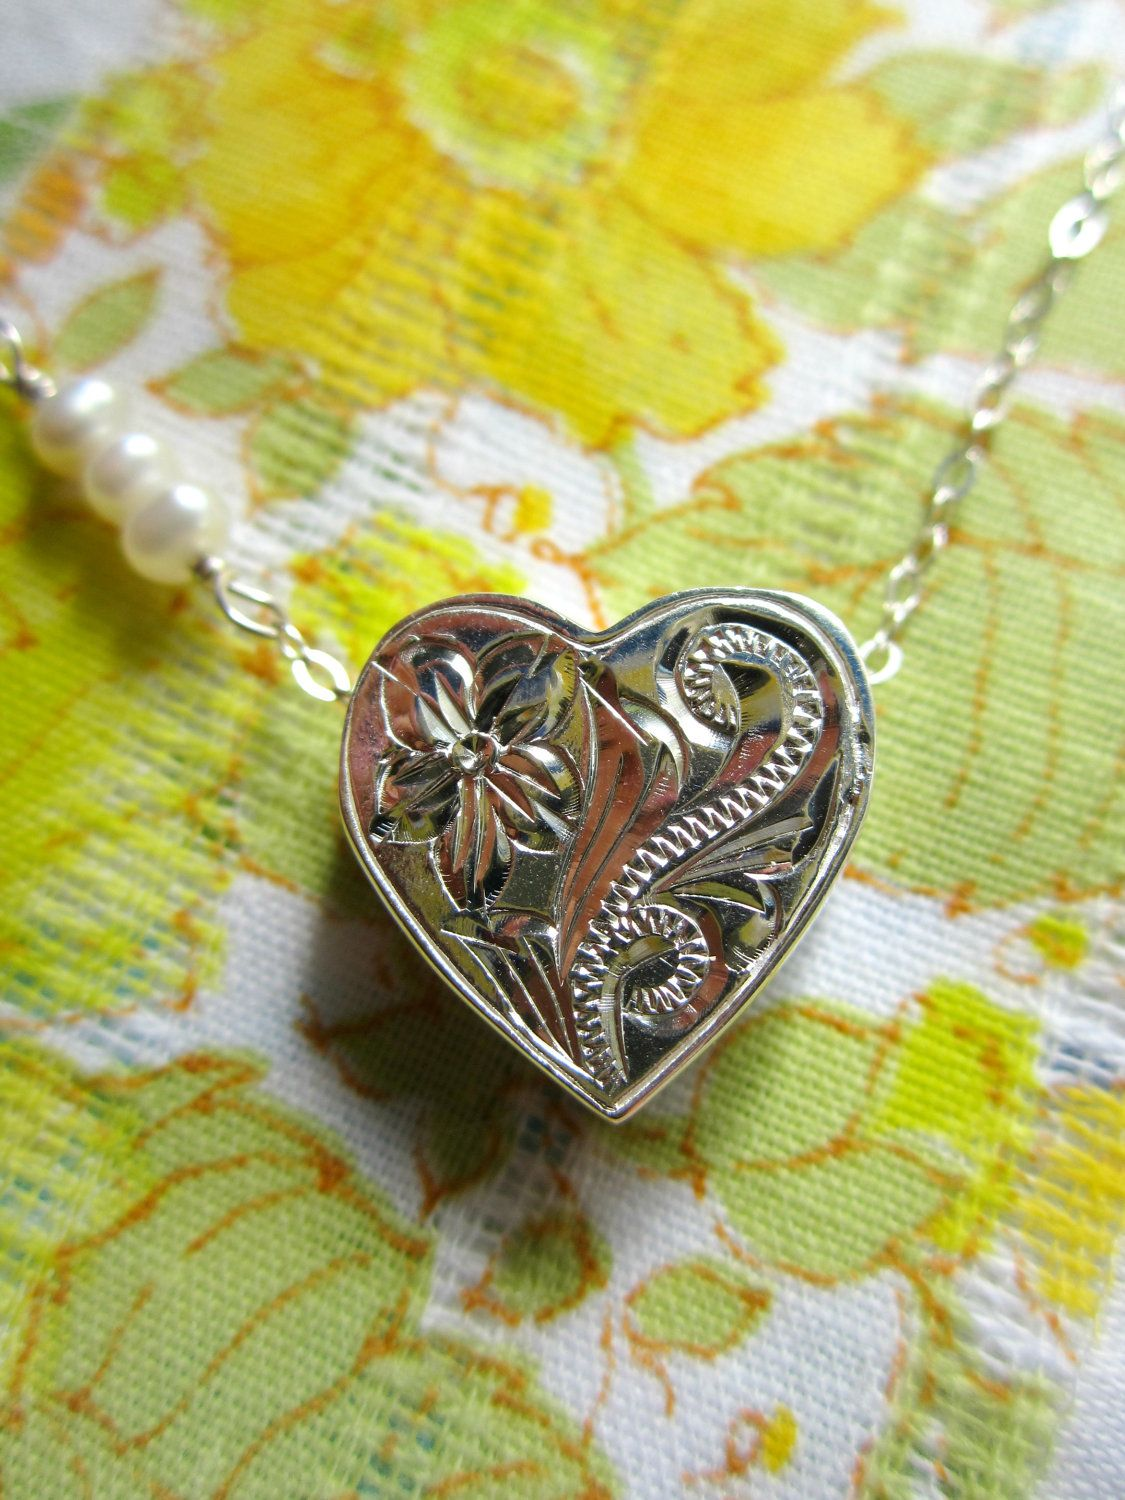 Medium 3D Floating Heart Necklace - Hawaiian Jewelry - Gift Mother Mom Grandmother Grandma Best Friend Daughter Christmas. $85.00, via Etsy.